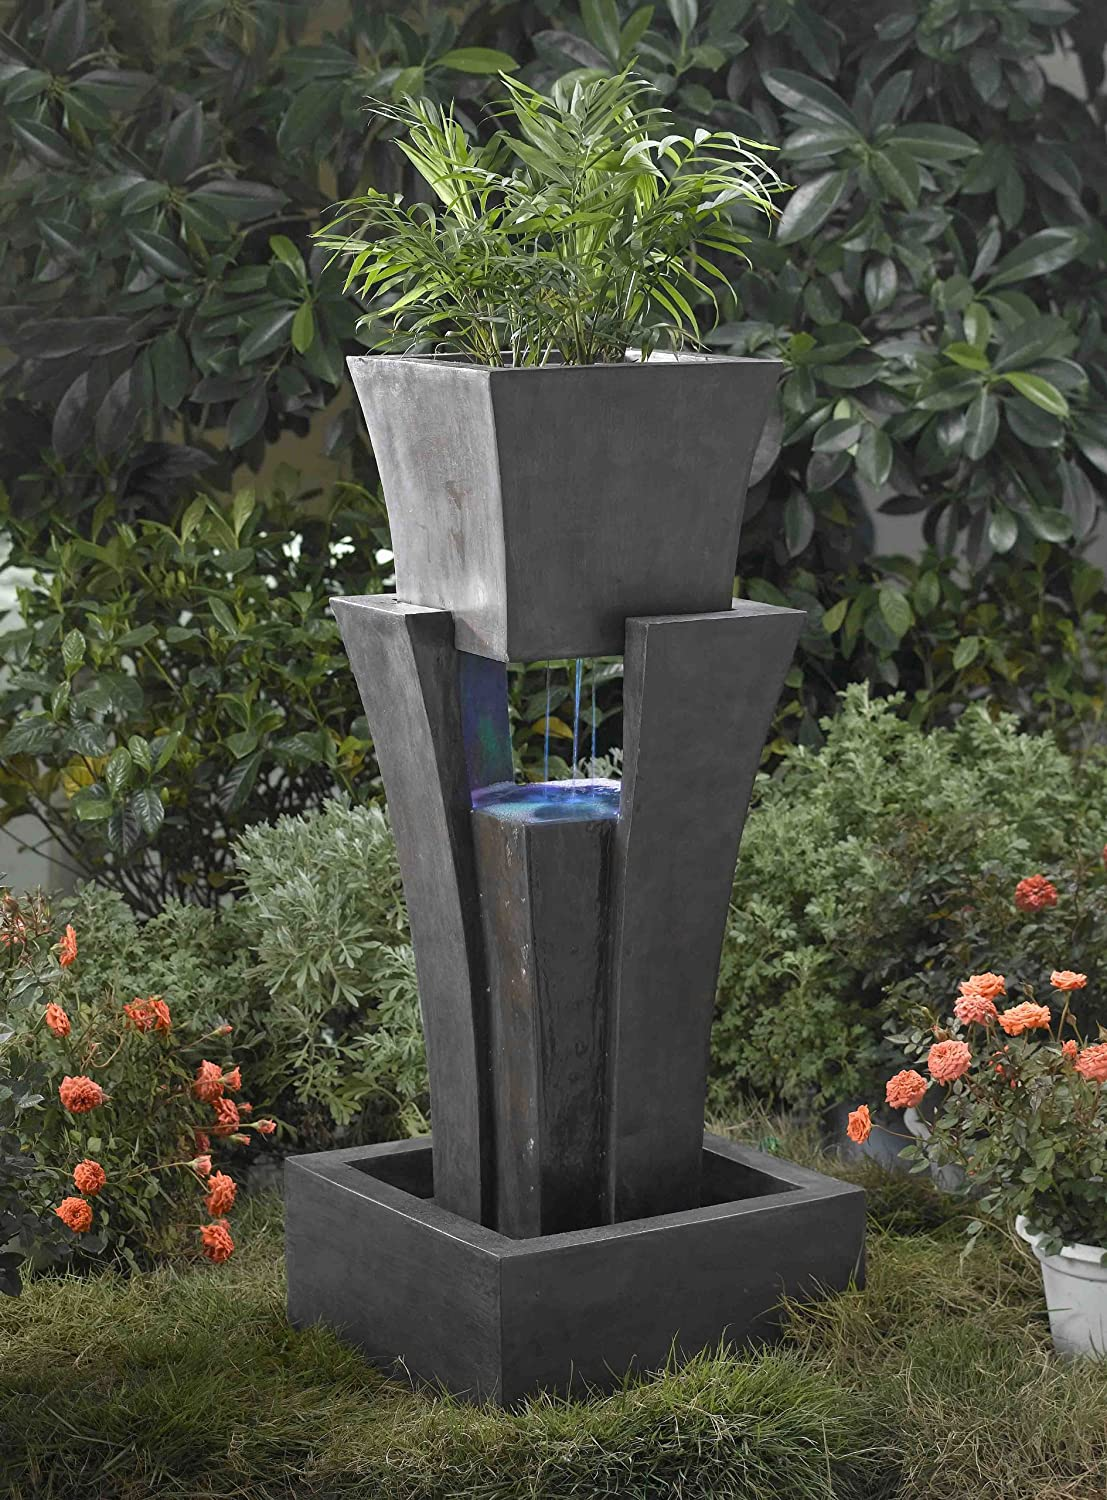 Amazon.com : Raining Water Outdoor/indoor Fountain With Planter With Led  Light : Free Standing Garden Fountains : Garden U0026 Outdoor